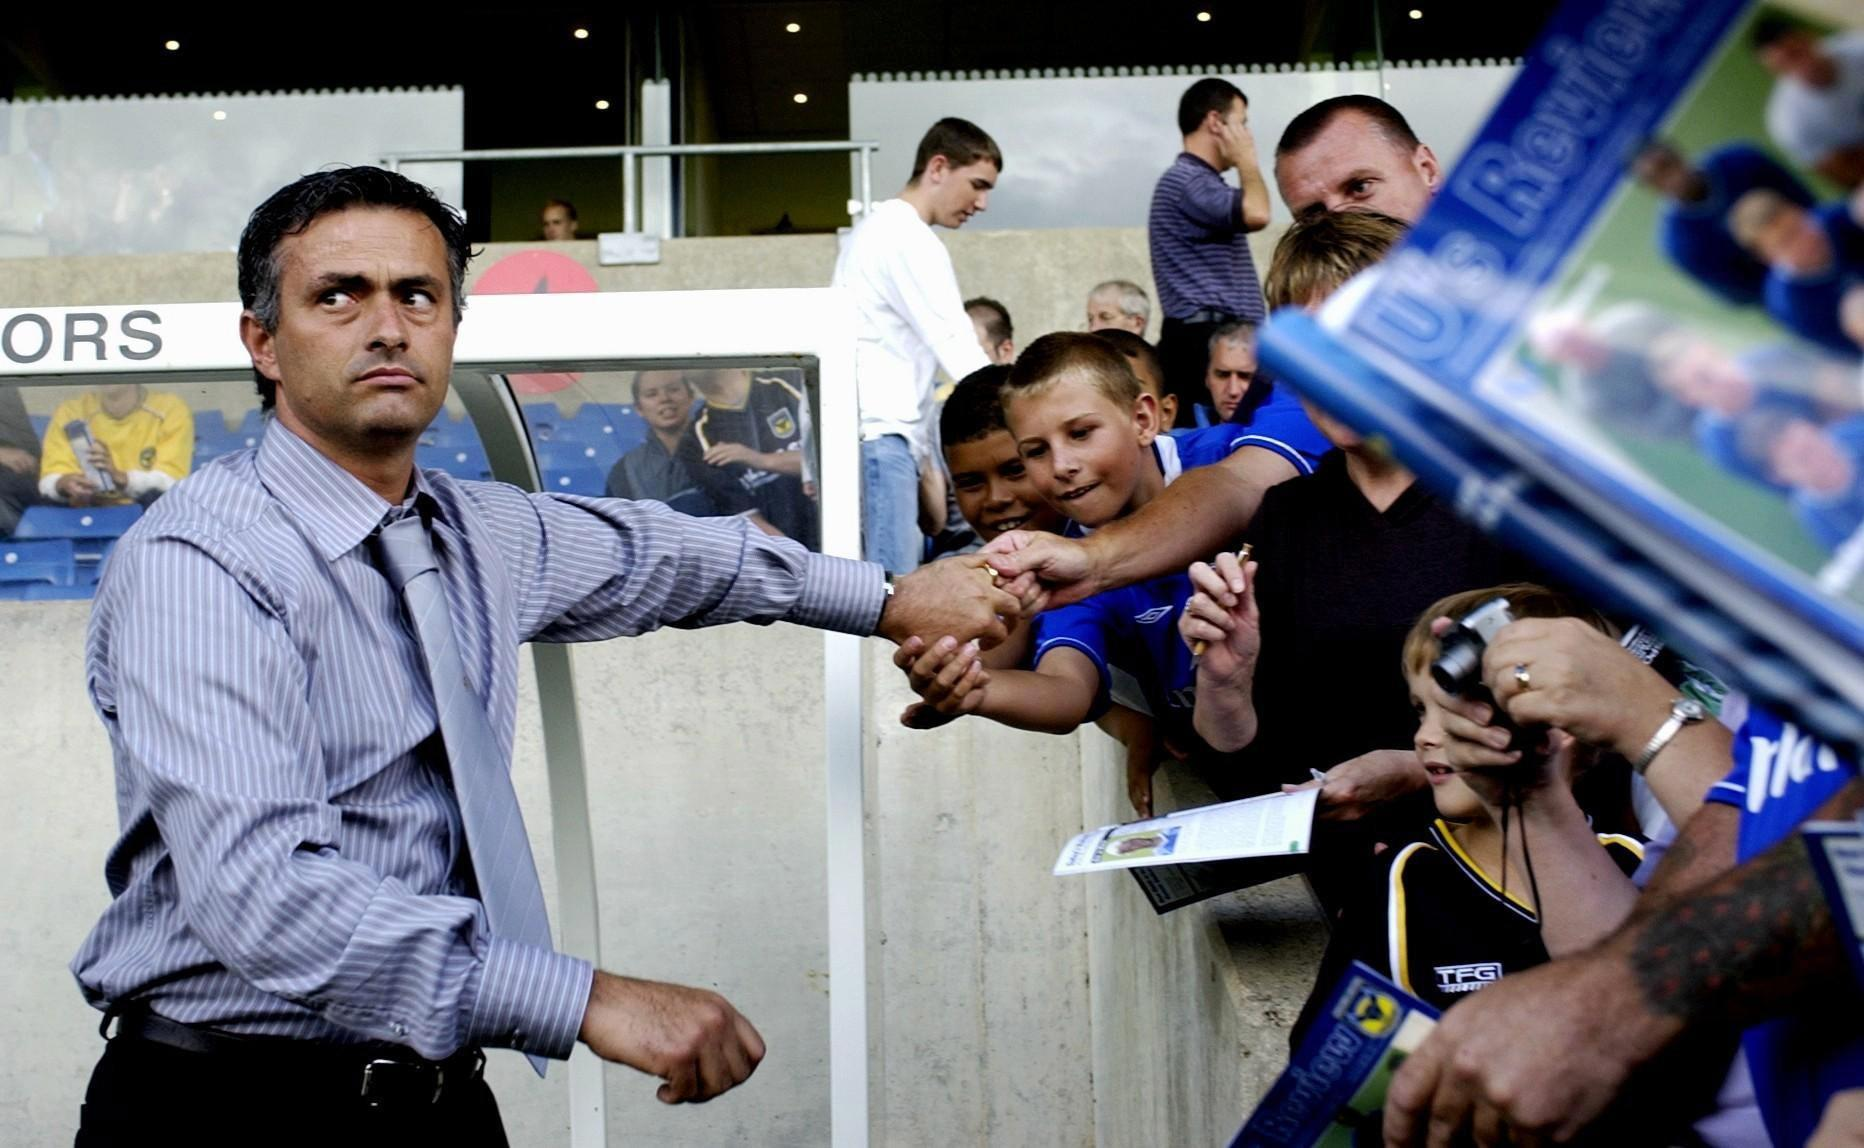 Chelsea's new manager Jose Mourinho signs autographs for fans before watching his side in action against Oxford during the pre-season friendly match at Kassam Stadium.  THIS PICTURE CAN ONLY BE USED WITHIN THE CONTEXT OF AN EDITORIAL FEATURE. NO WEBSITE/INTERNET USE UNLESS SITE IS REGISTERED WITH FOOTBALL ASSOCIATION PREMIER LEAGUE.   (Photo by Chris Young - PA Images/PA Images via Getty Images)